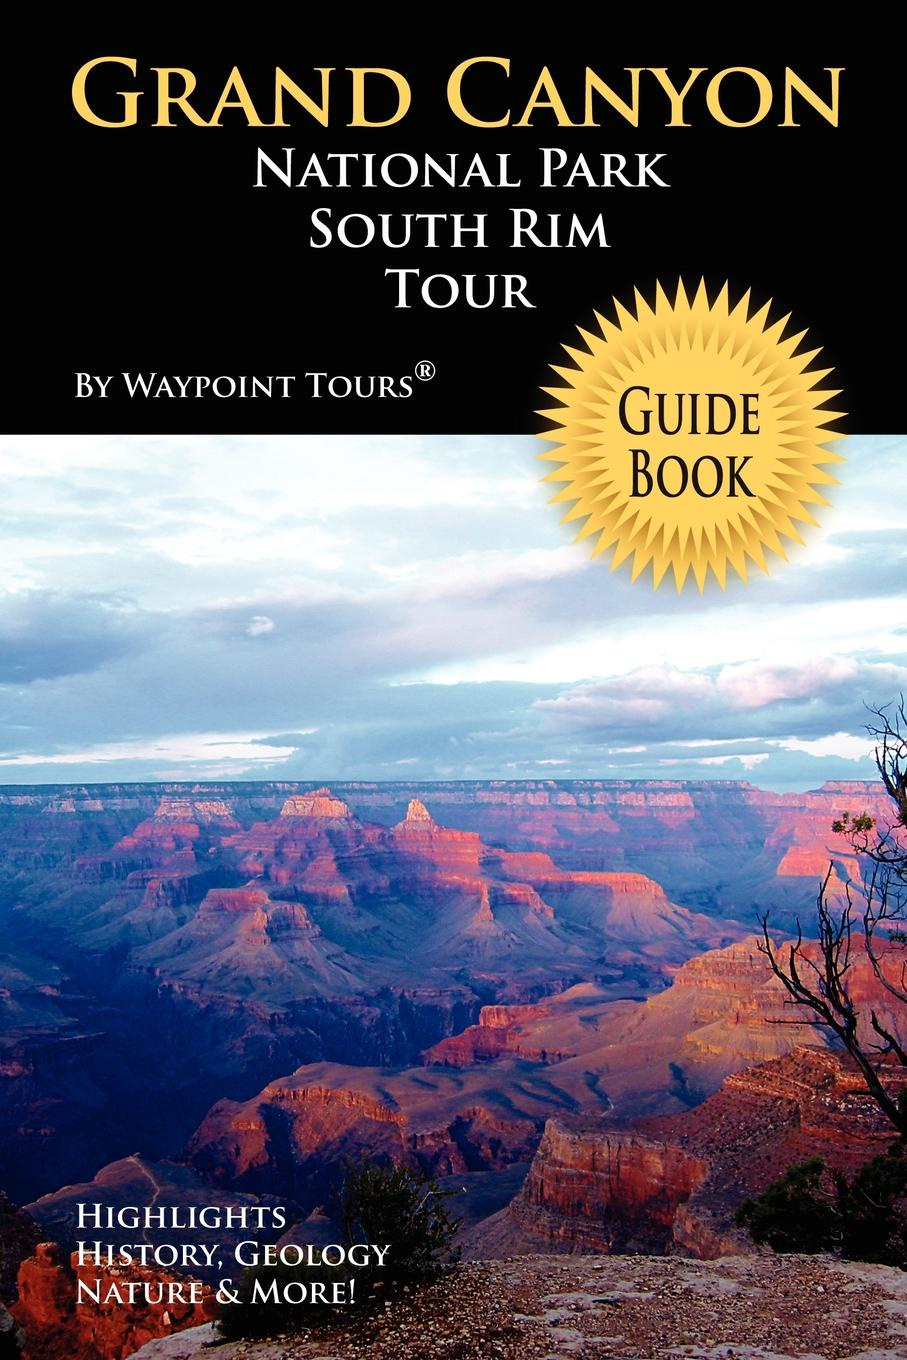 Waypoint Tours Grand Canyon National Park South Rim Tour Guide Book eugene perma cycle vital nature spray disciplinant спрей для волос термозащитный 150 мл